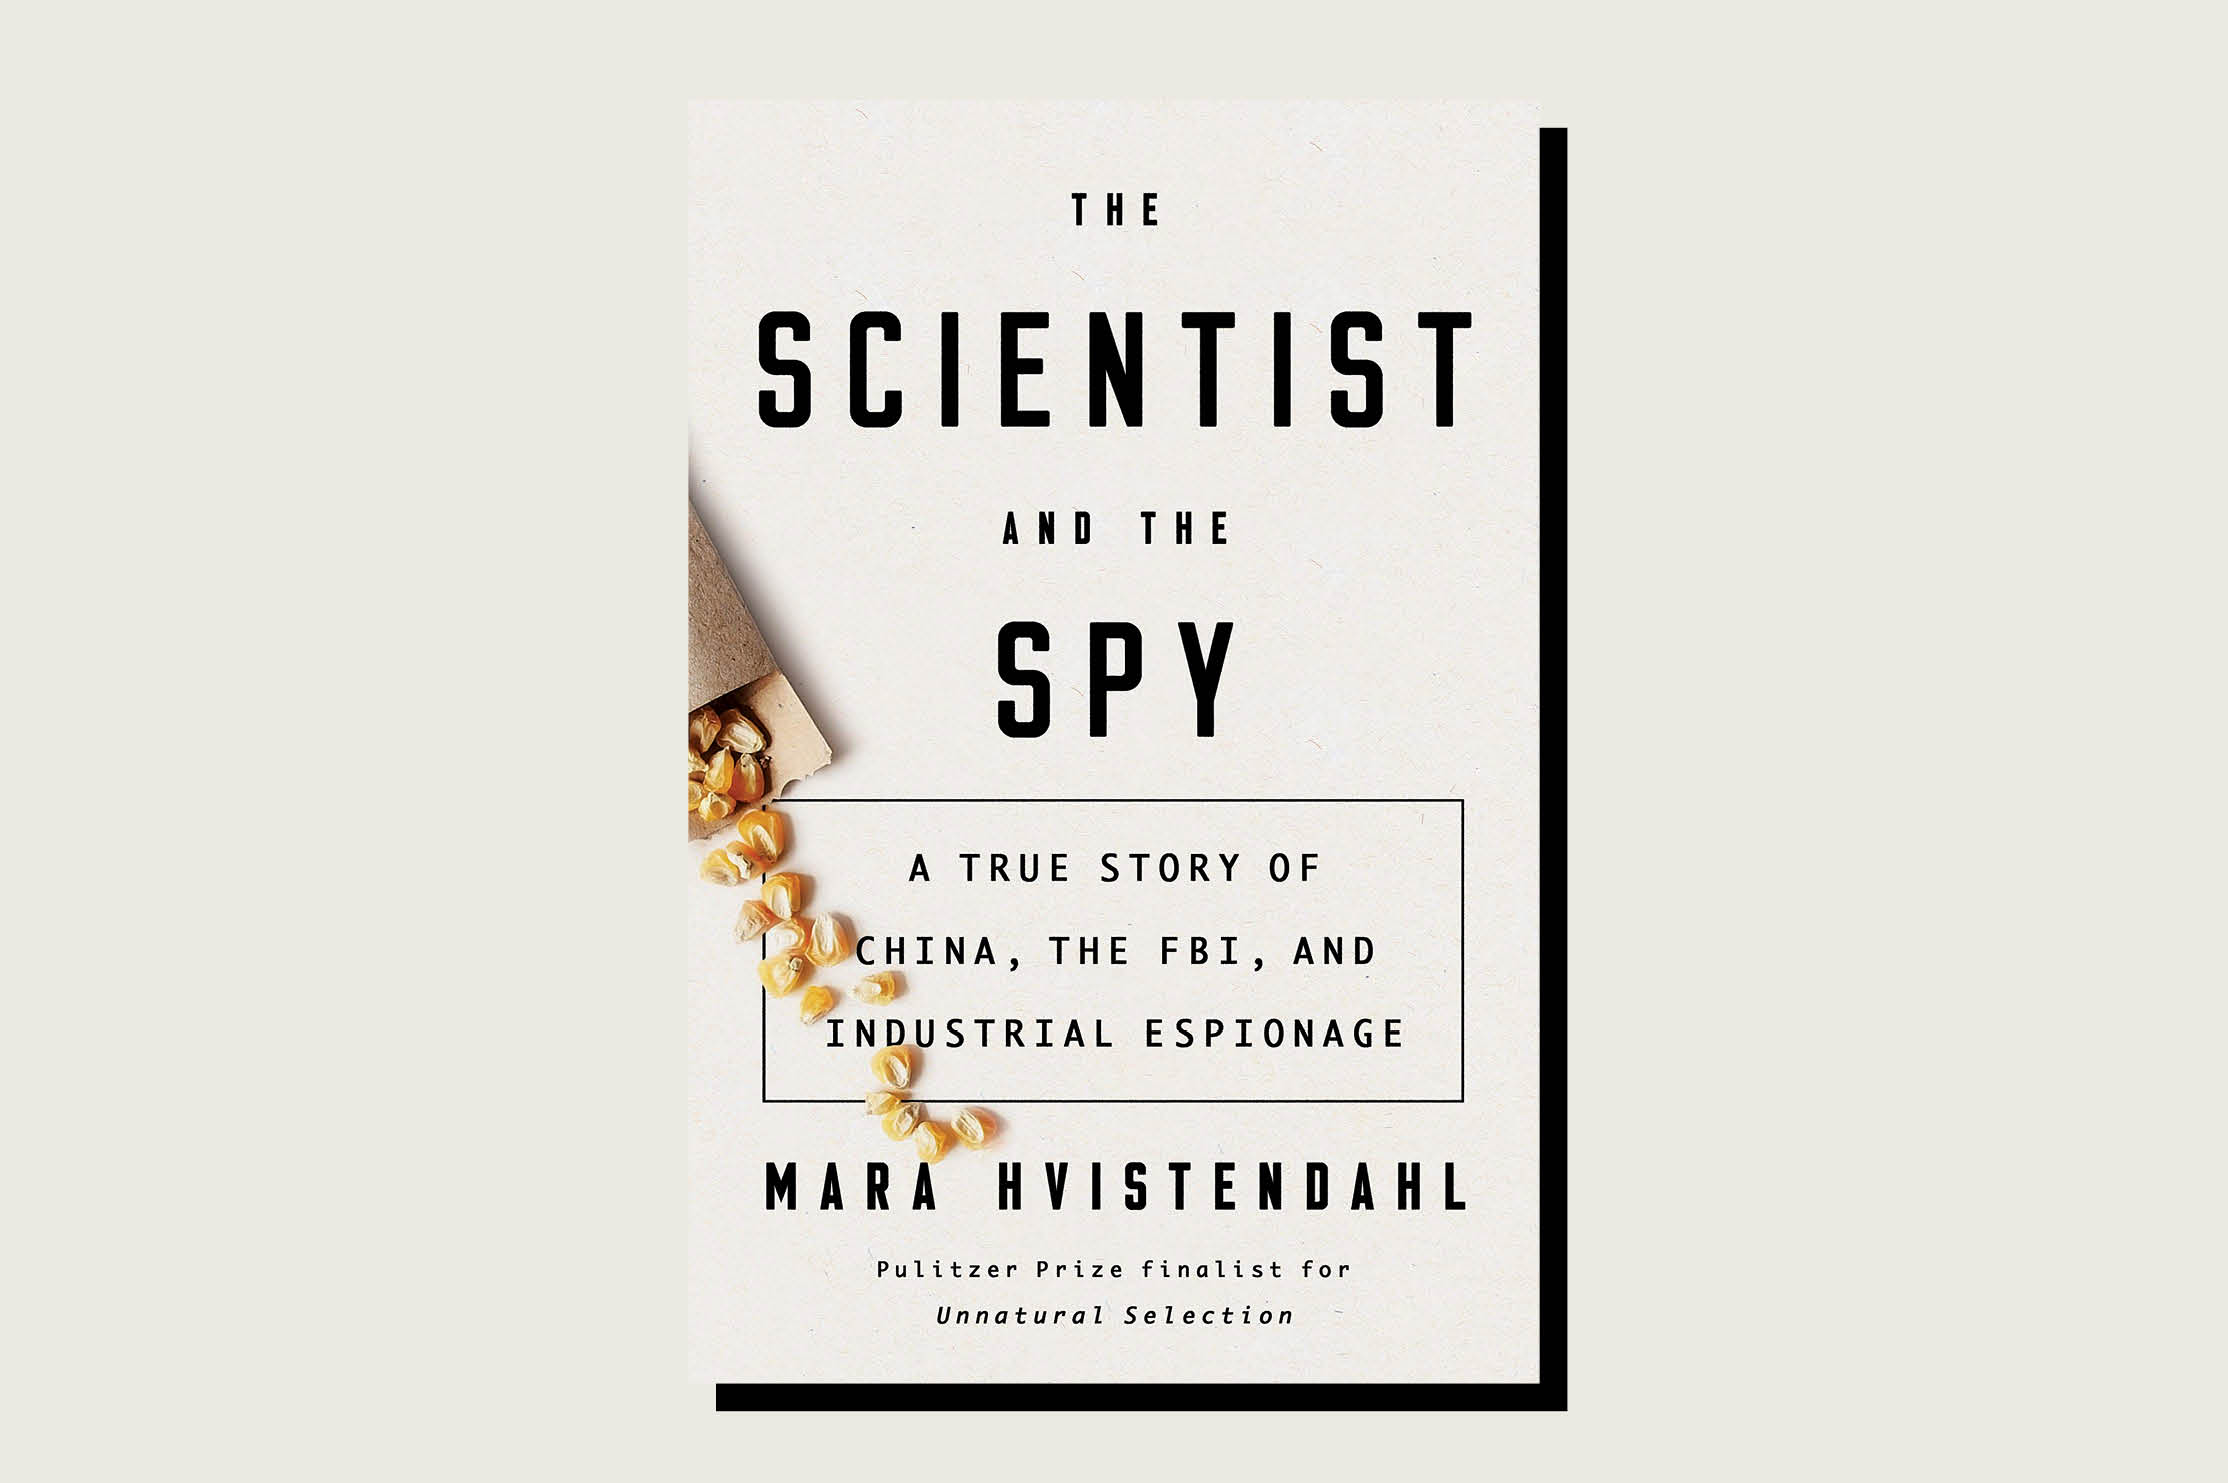 The Scientist and the Spy: A True Story of China, the FBI, and Industrial Espionage, Mara Hvistendahl, Riverhead Books, 336 pp., , February 2020 https://www.penguinrandomhouse.com/books/549962/the-scientist-and-the-spy-by-mara-hvistendahl/